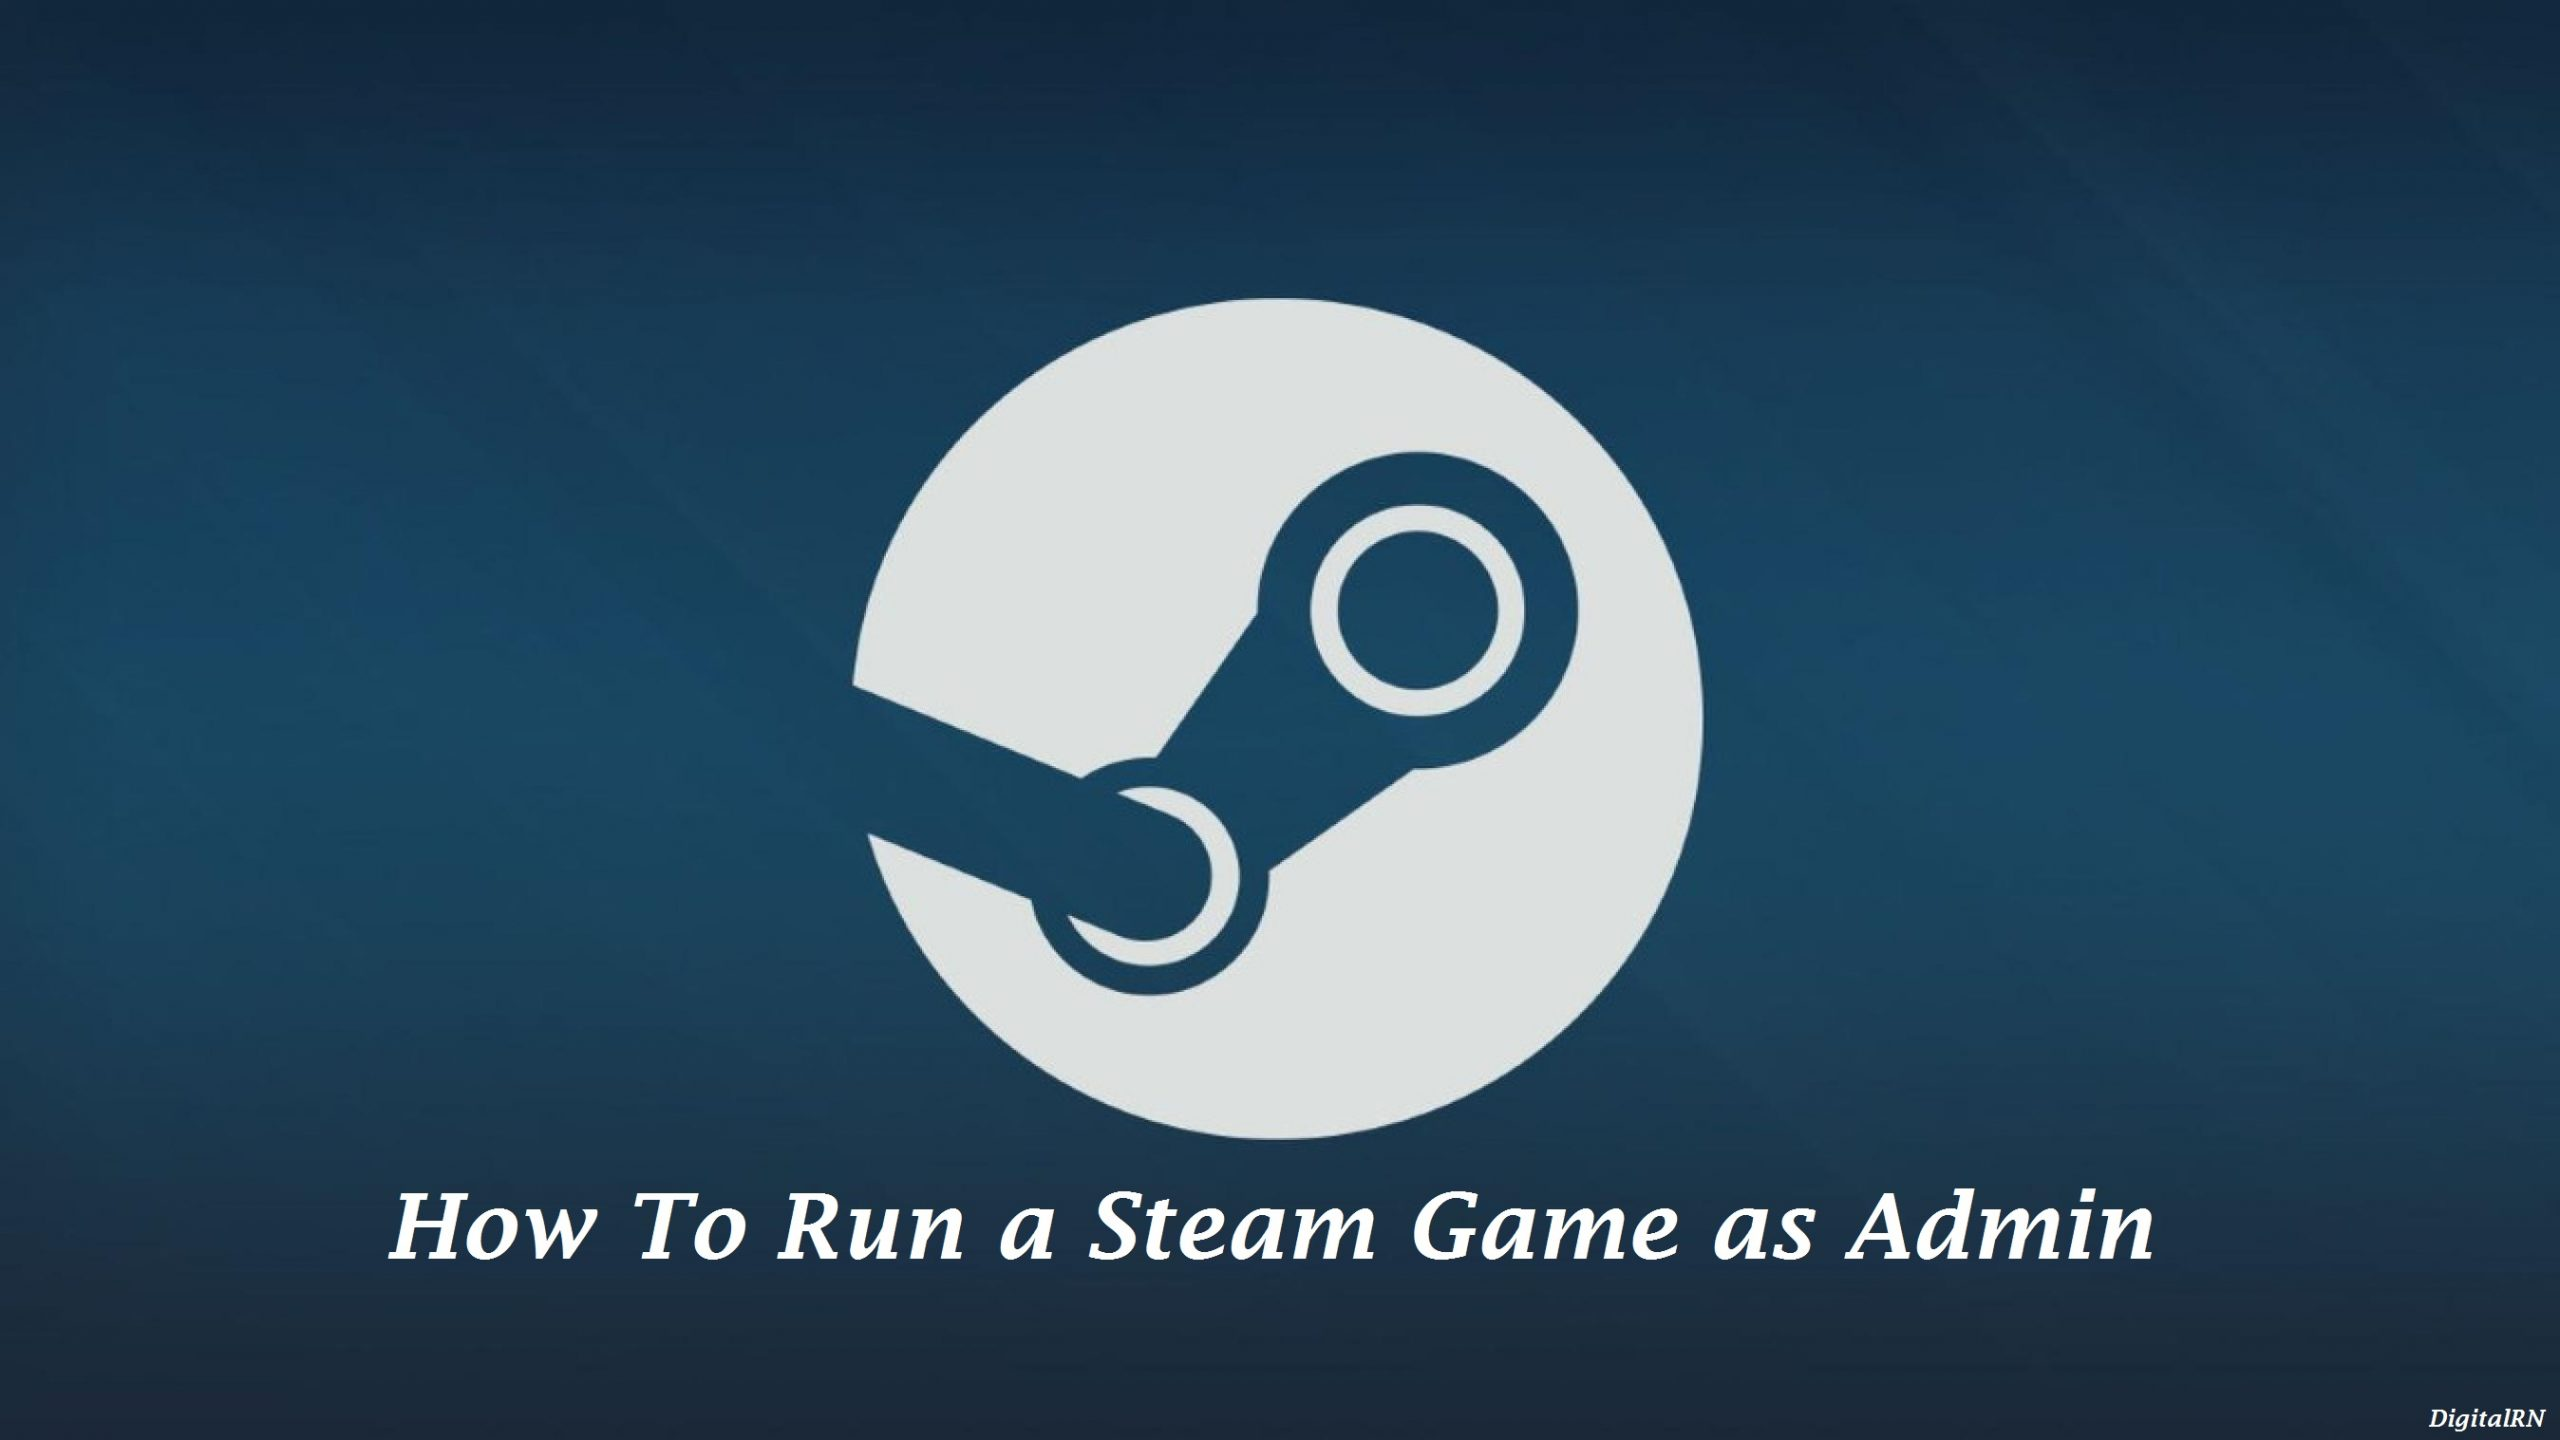 How To Run a Steam Game as Admin